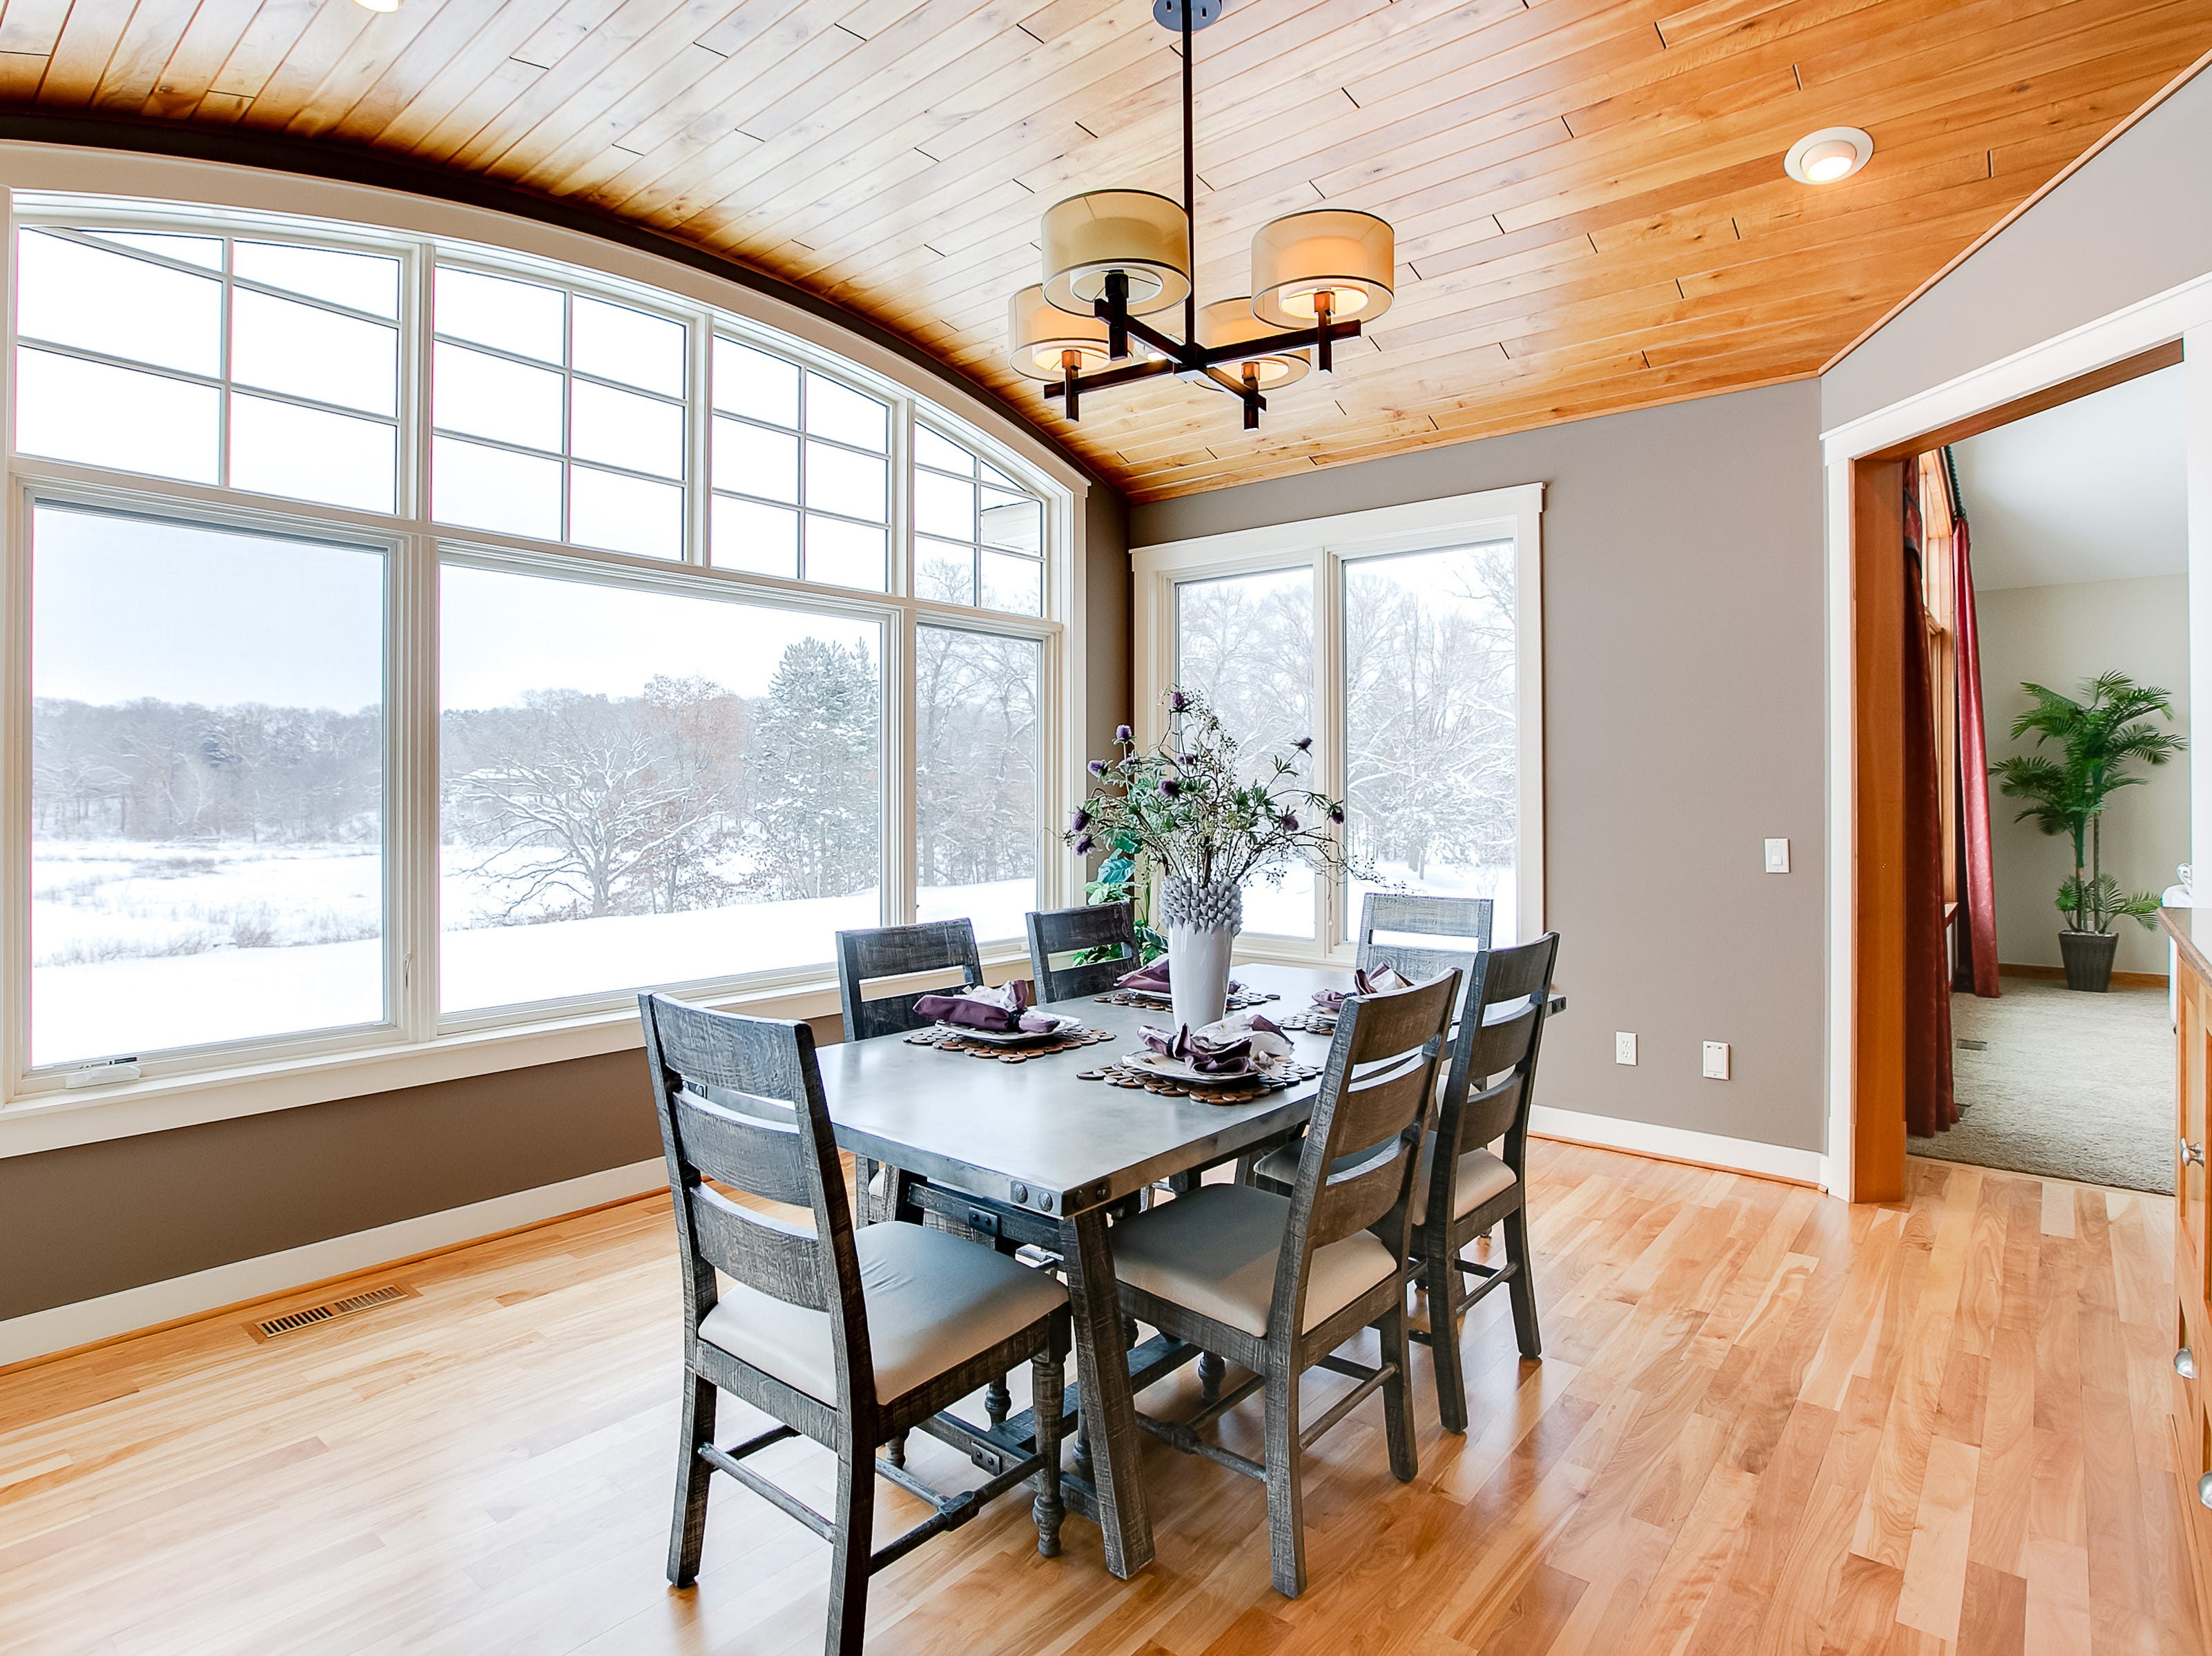 The dining room overlooks the backyard nature-scape and is large enough to accommodate big groups for holidays and gatherings.